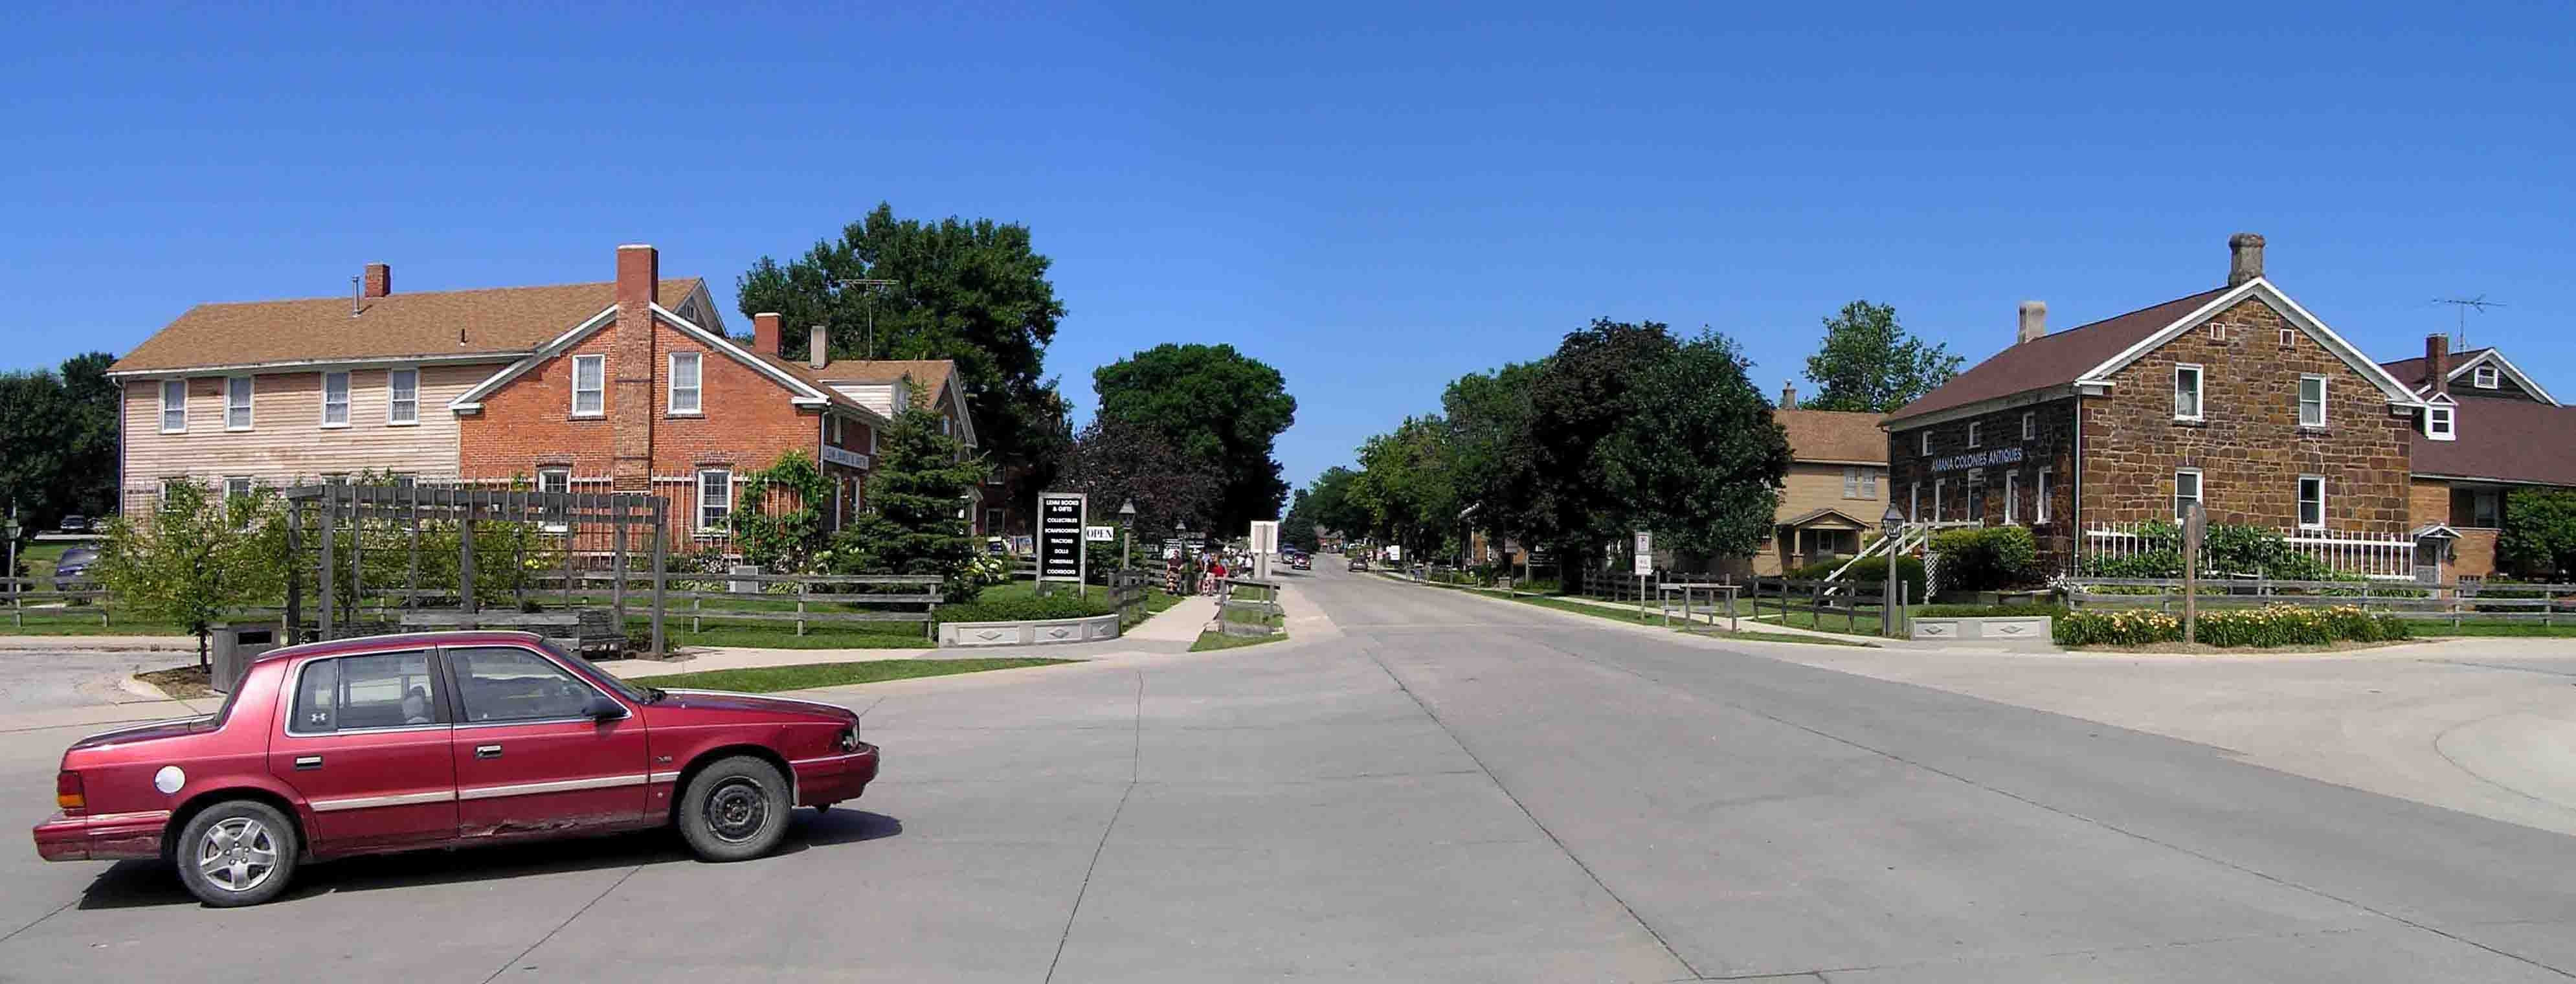 A view of the main street (220th Trail) of the village of Amana, the largest of the seven villages